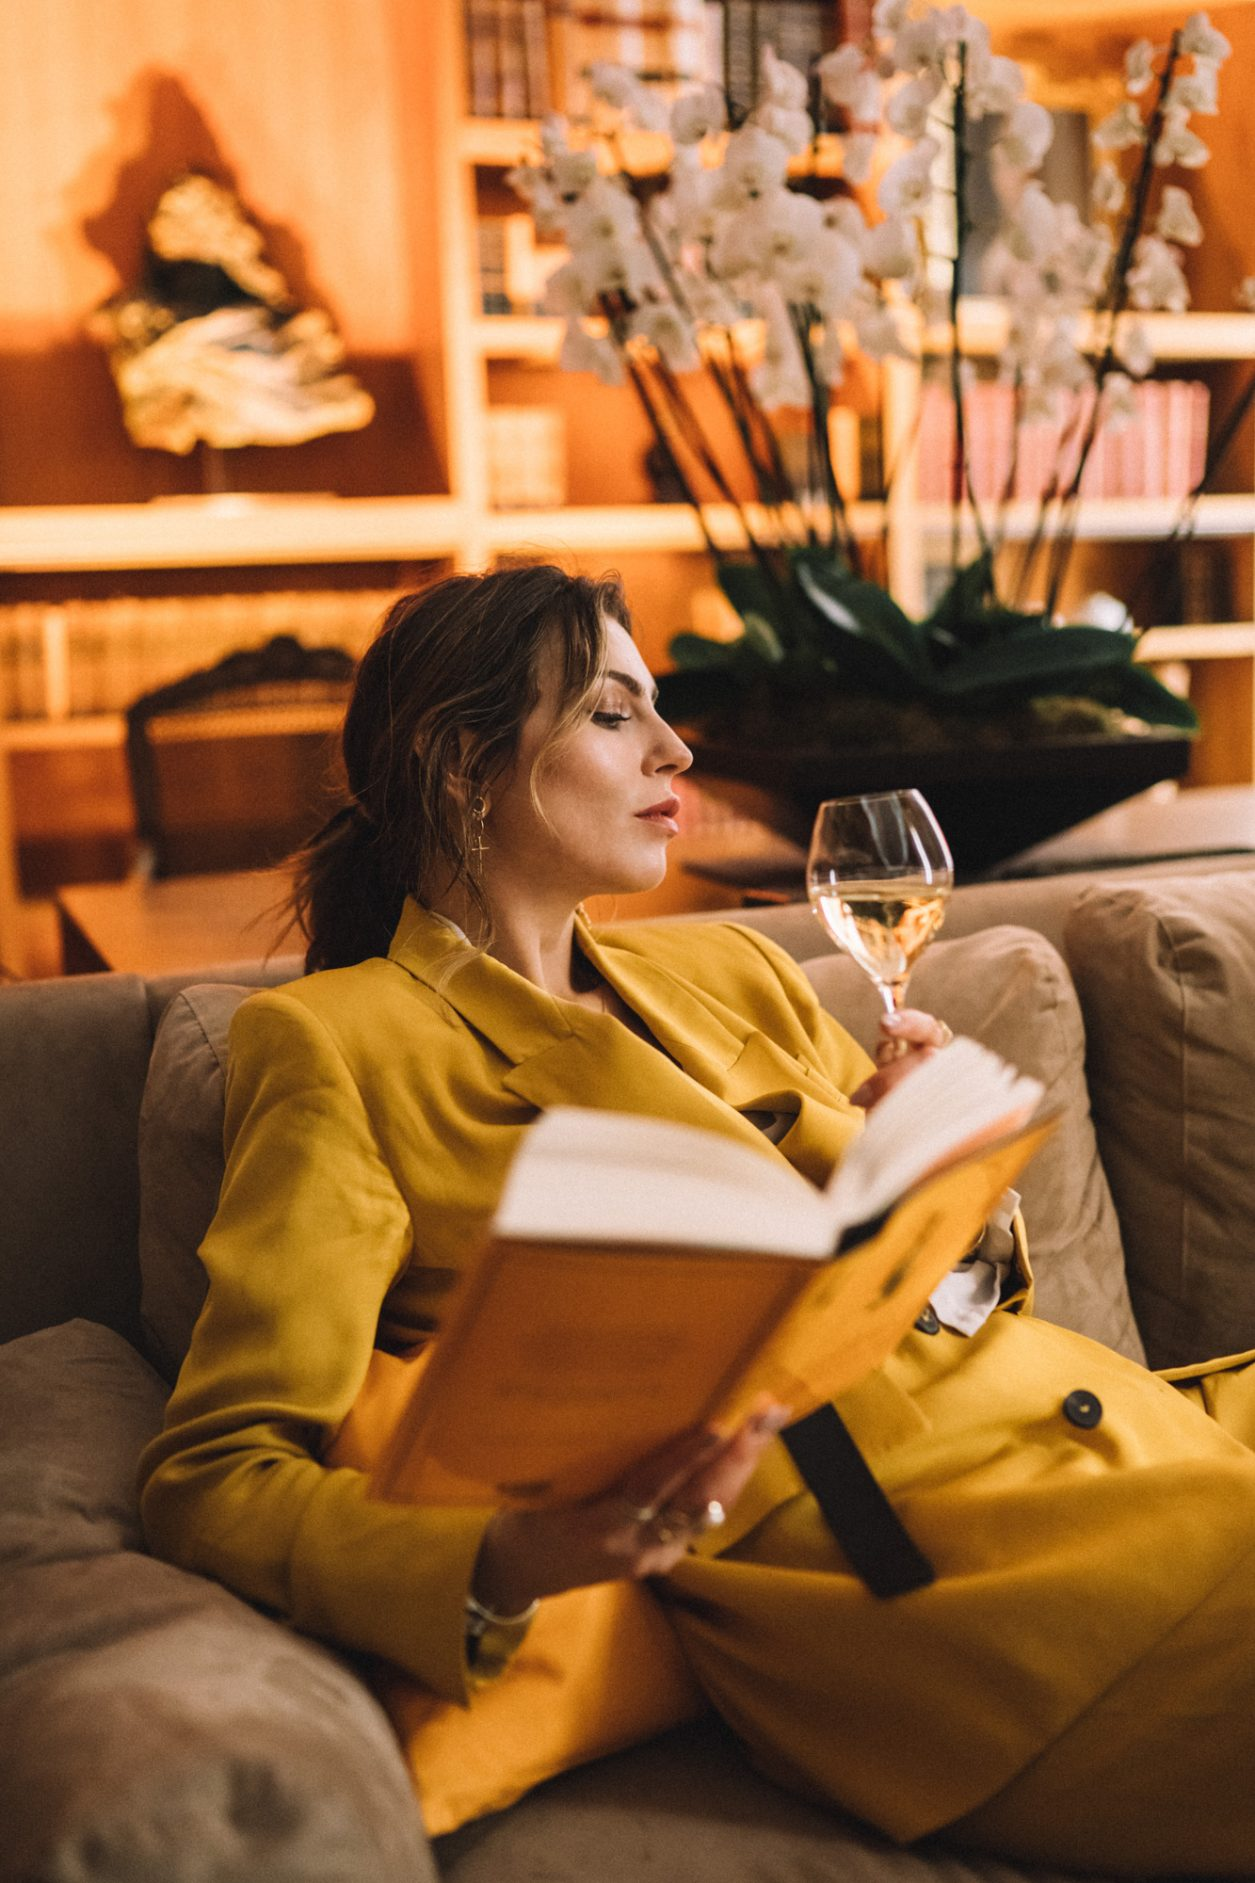 Veuve Clicquot Business Woman Award Germany 2019 | by Masha Sedgwick | Interview with Verena Pausdner | wearing: yellow suit | reading: Veuve Clicquot book